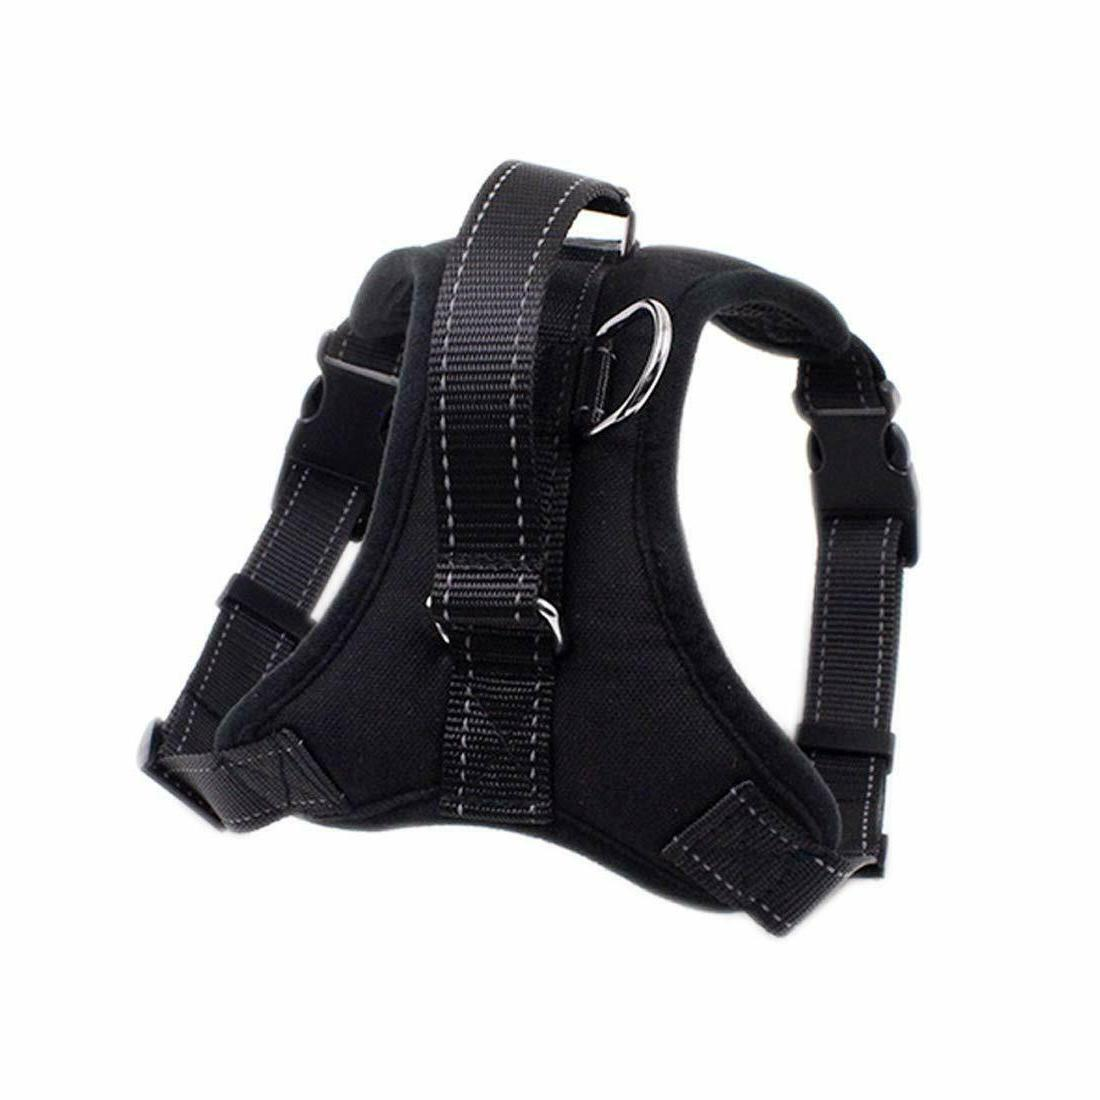 No Dog Harness with and Reflective Body Padded